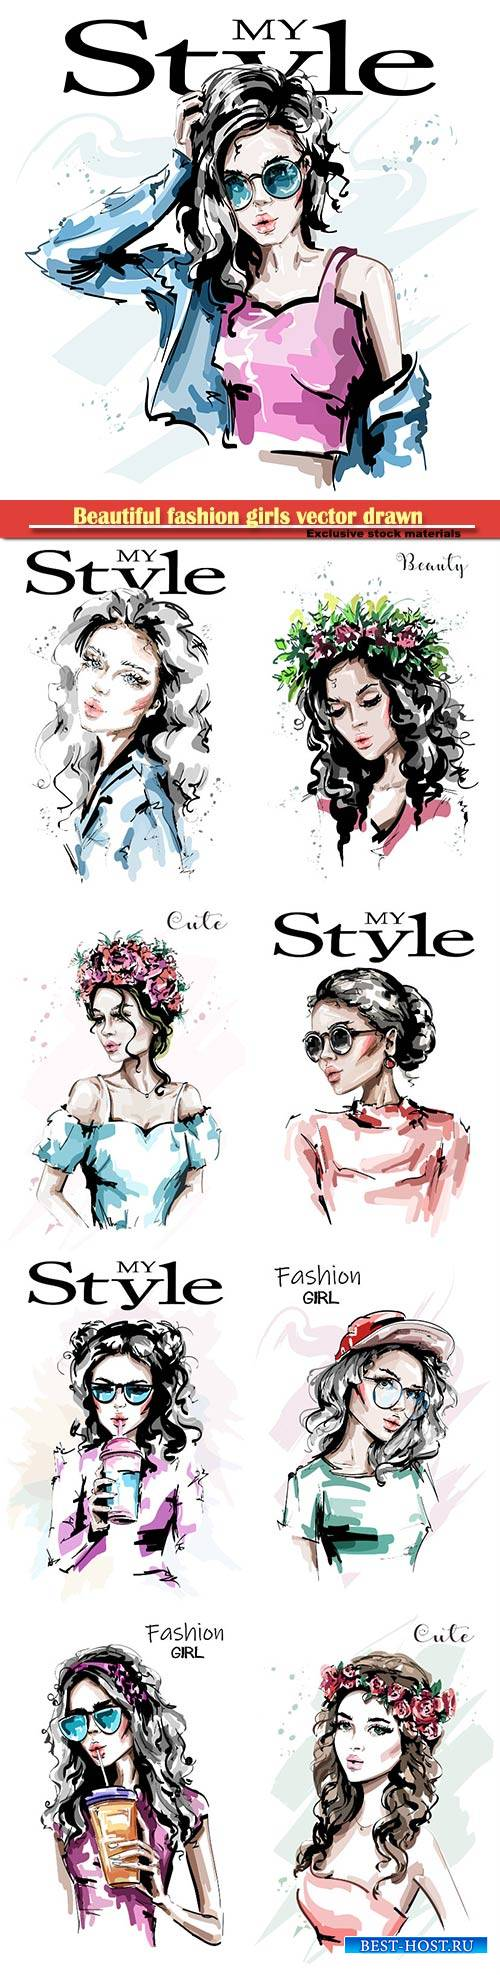 Beautiful fashion girls vector drawn illustrations